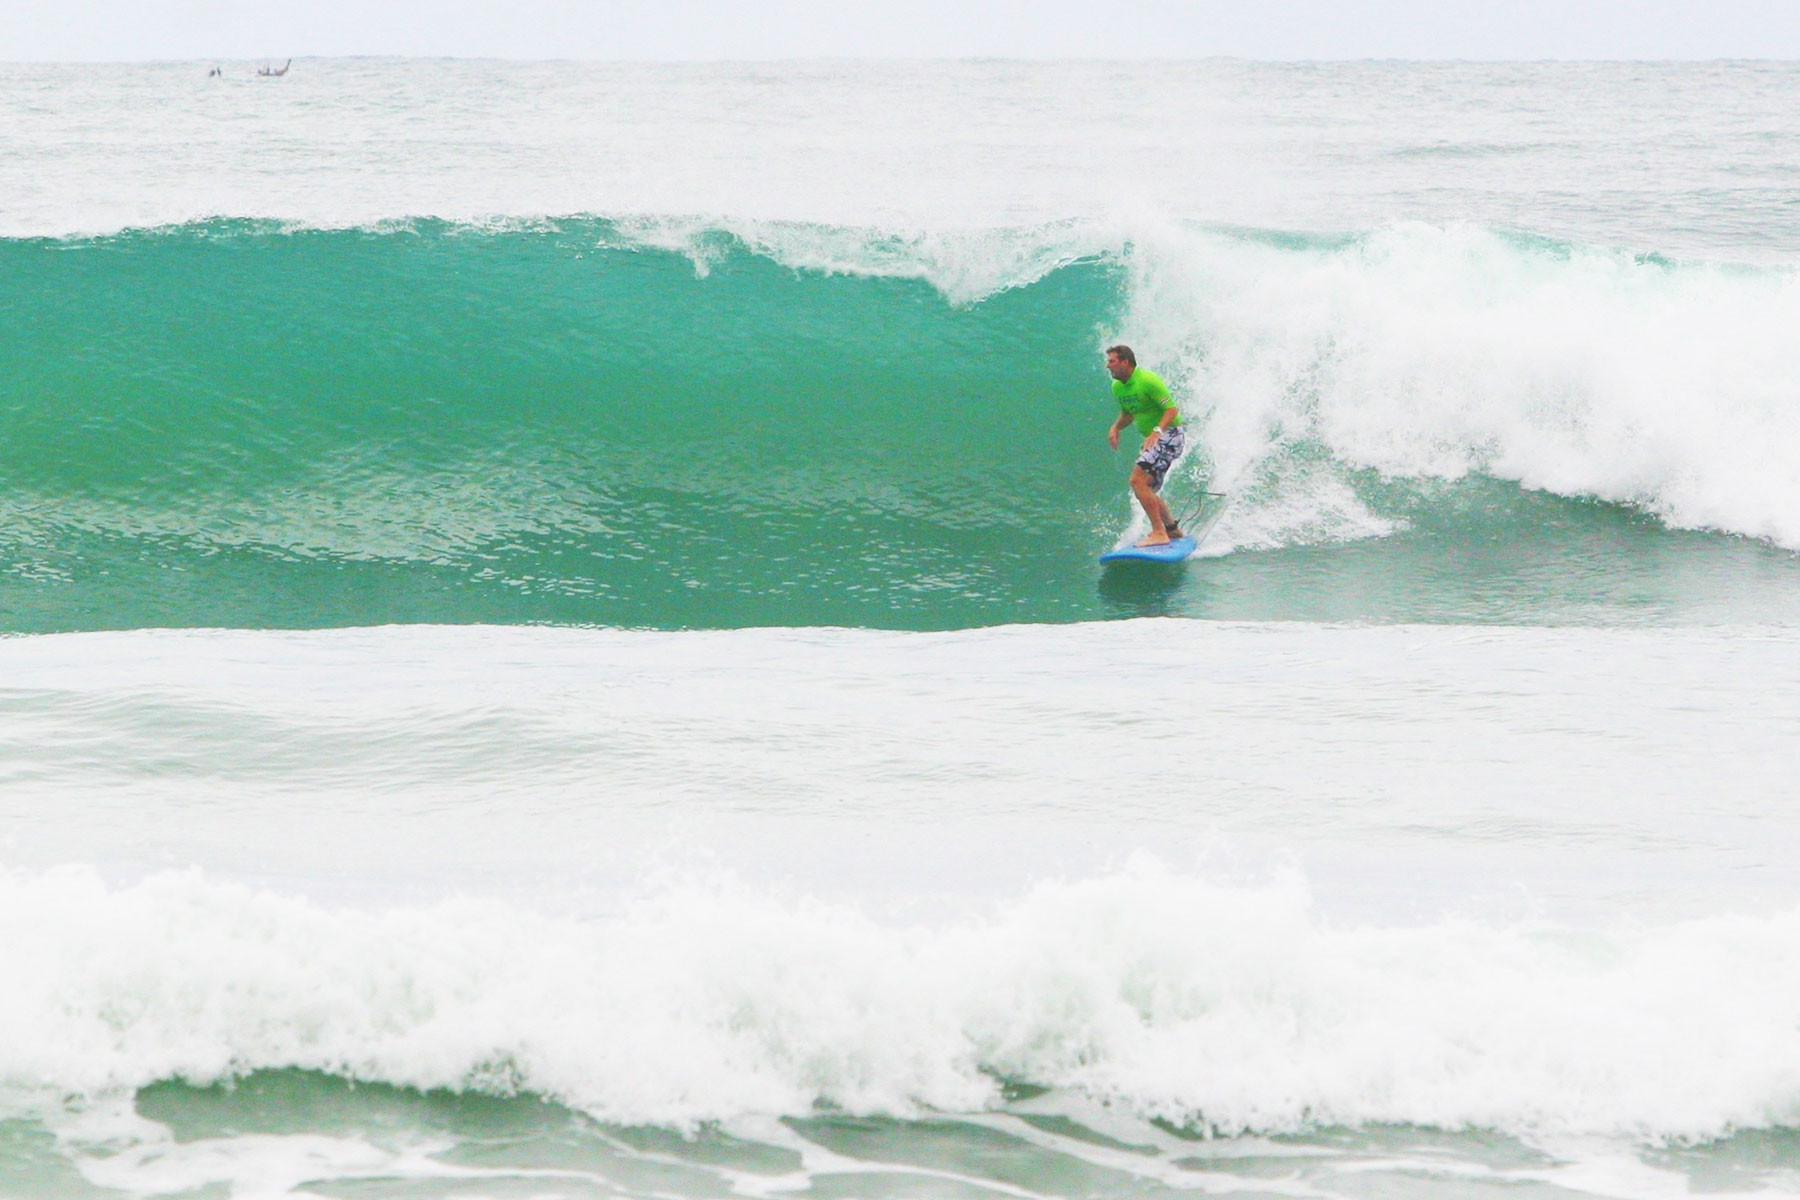 Phuket Surfing Contest | Surfing Thailand | Surf Tourism Research | Dr Steven Martin | Surf Science Andaman Sea